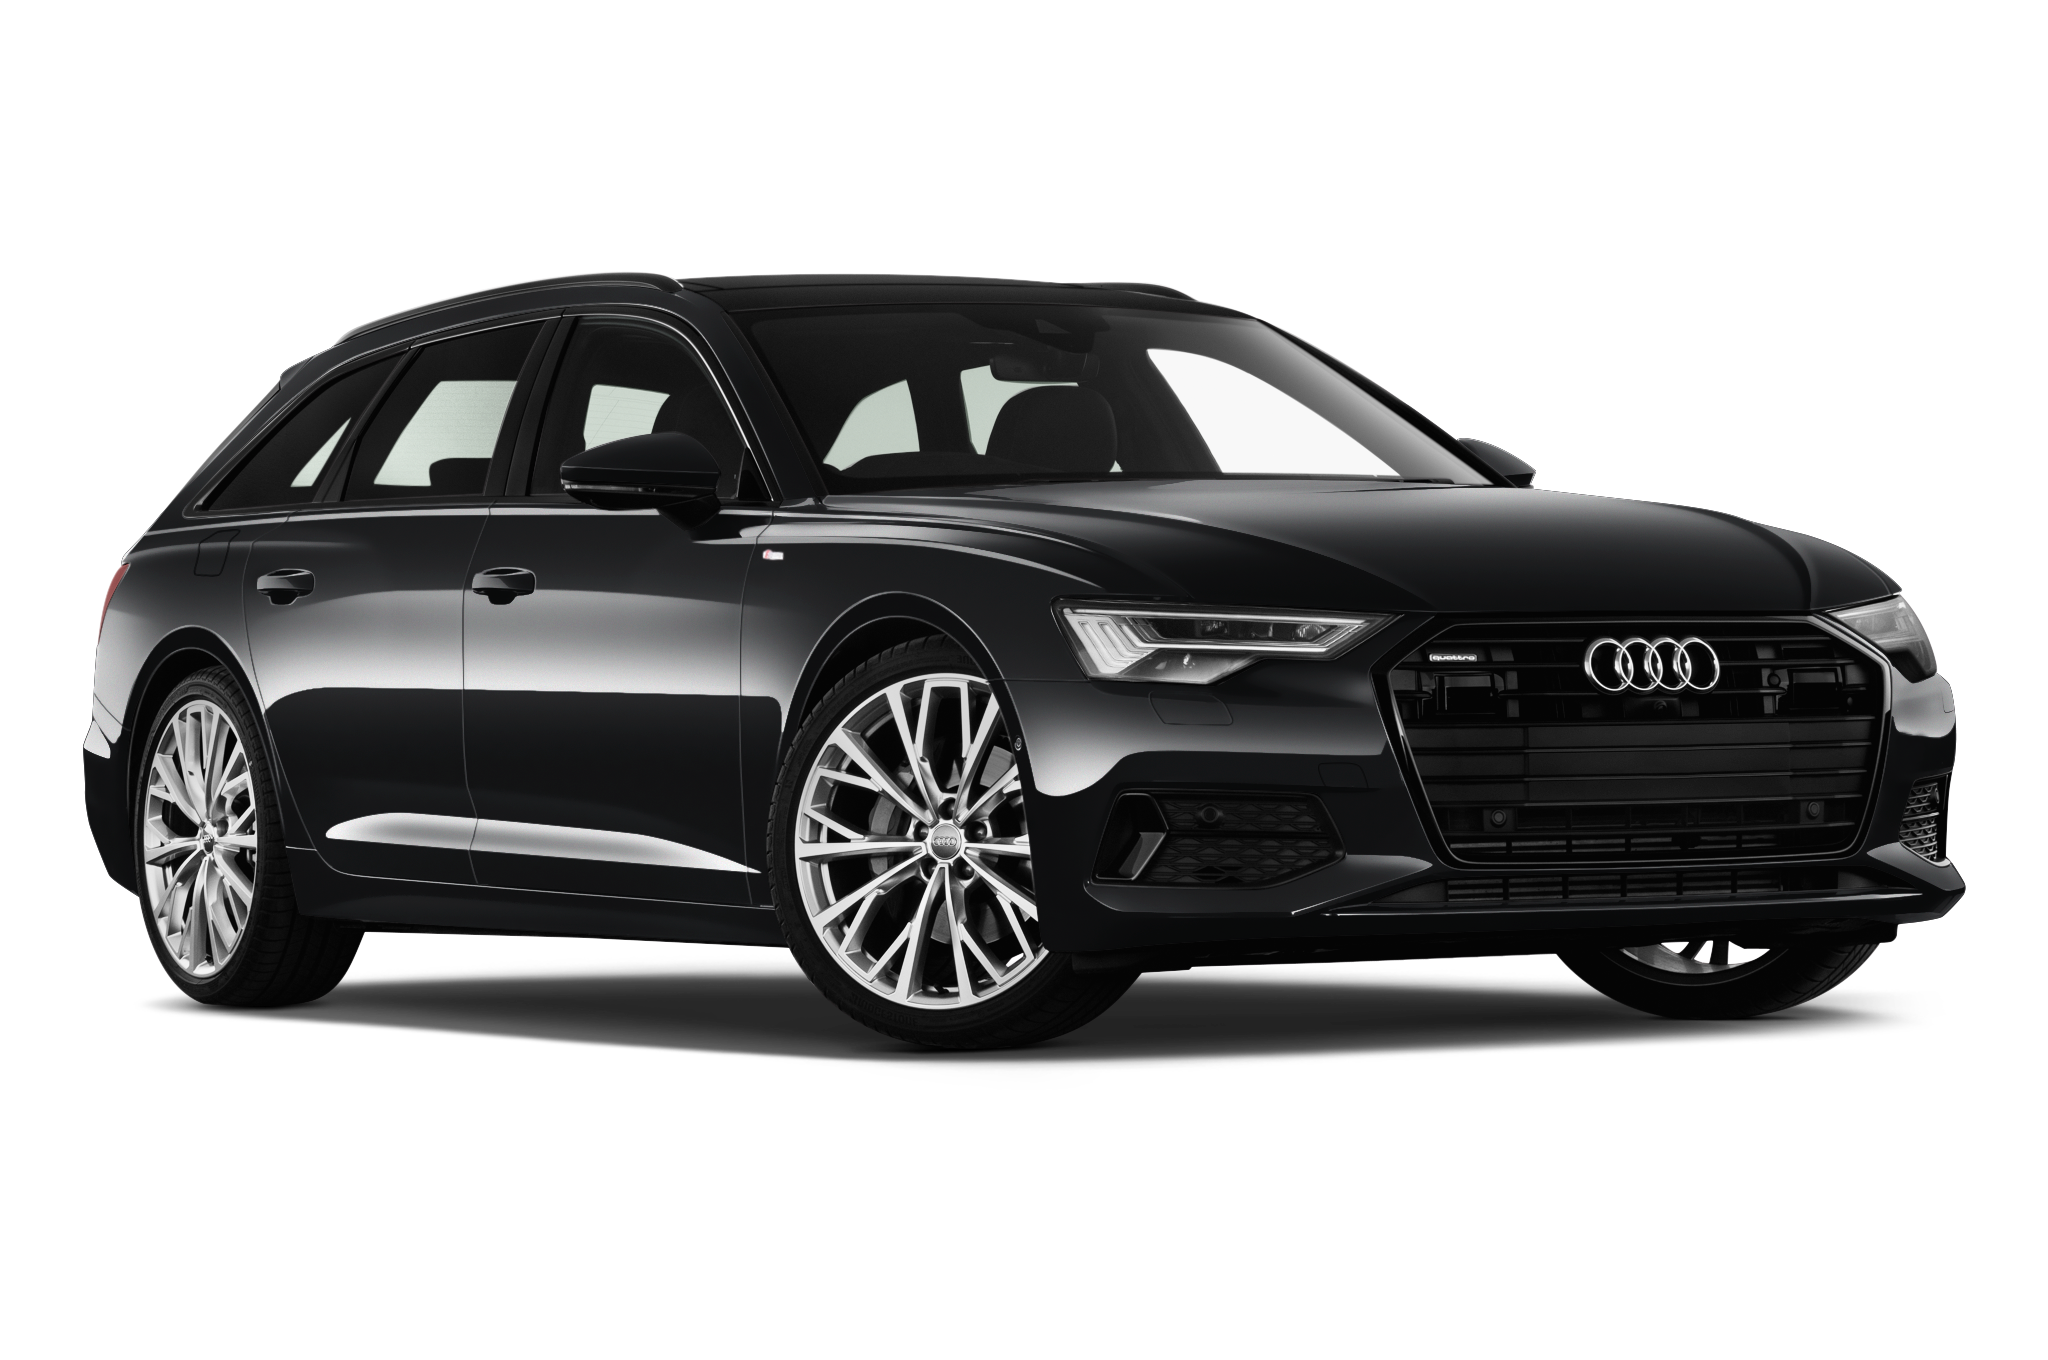 New Audi A6 Avant Deals Offers Save Up To 13 050 Carwow